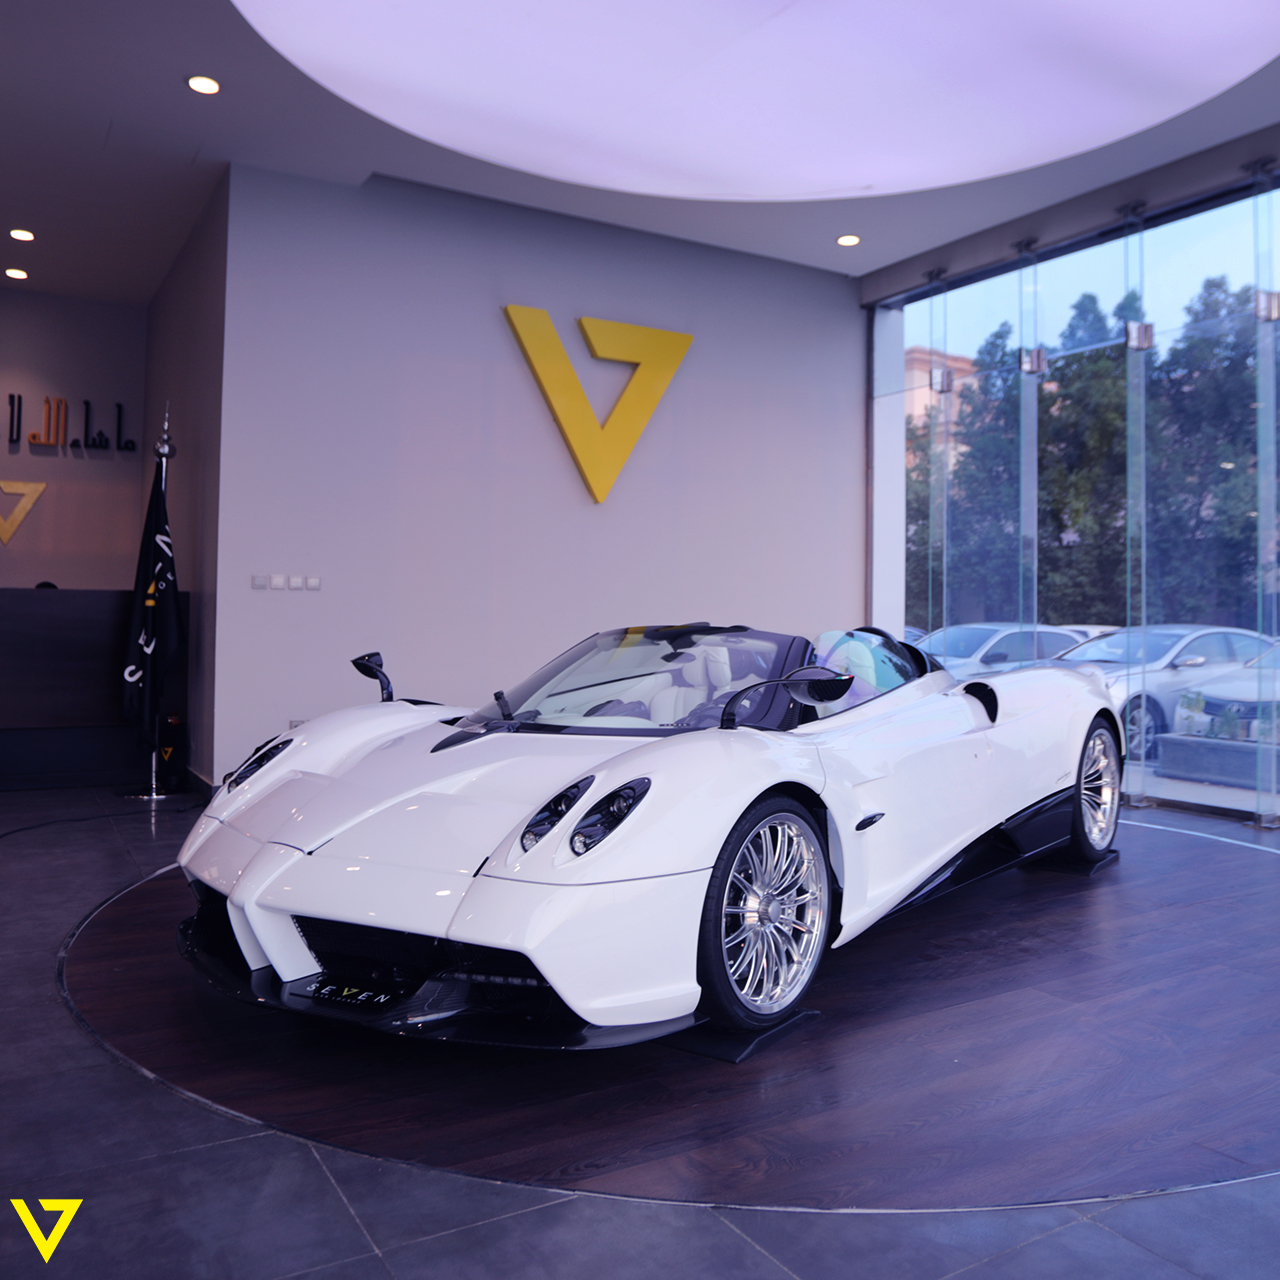 Pagani Huayra For Sale >> First Pagani Huayra Roadster Listed For Sale With Delivery Mileage